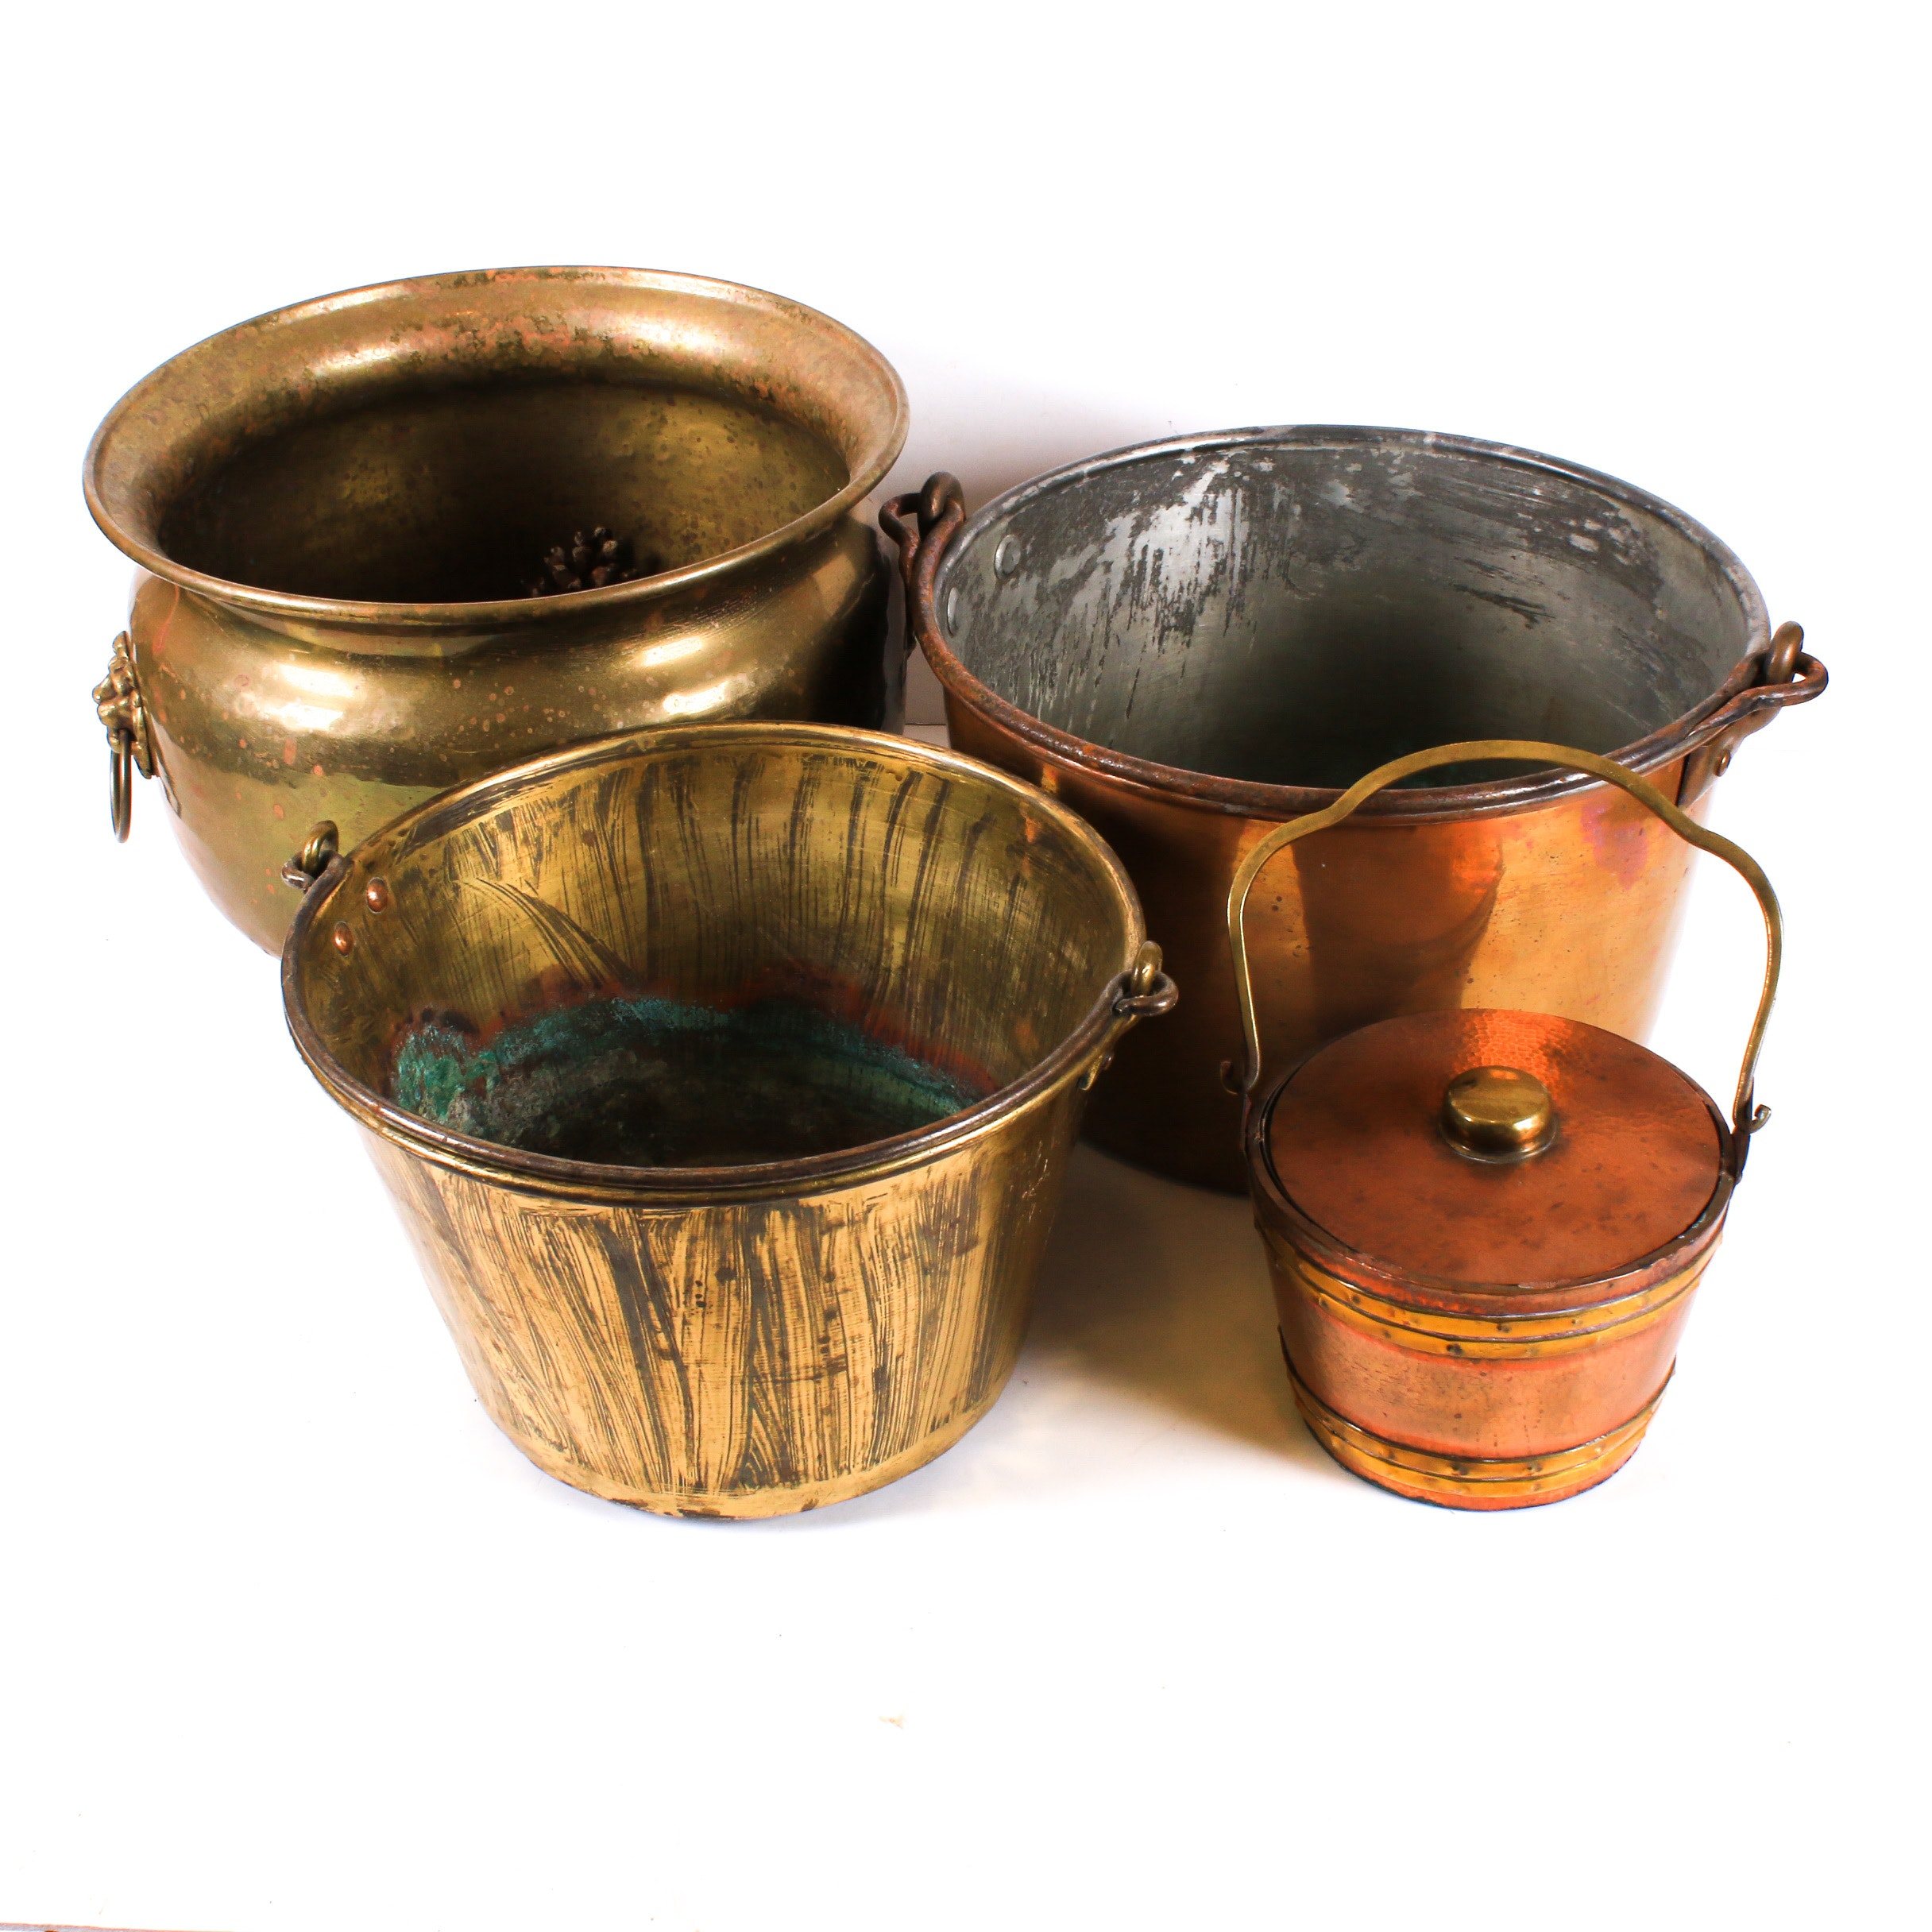 Copper and Brass Pots